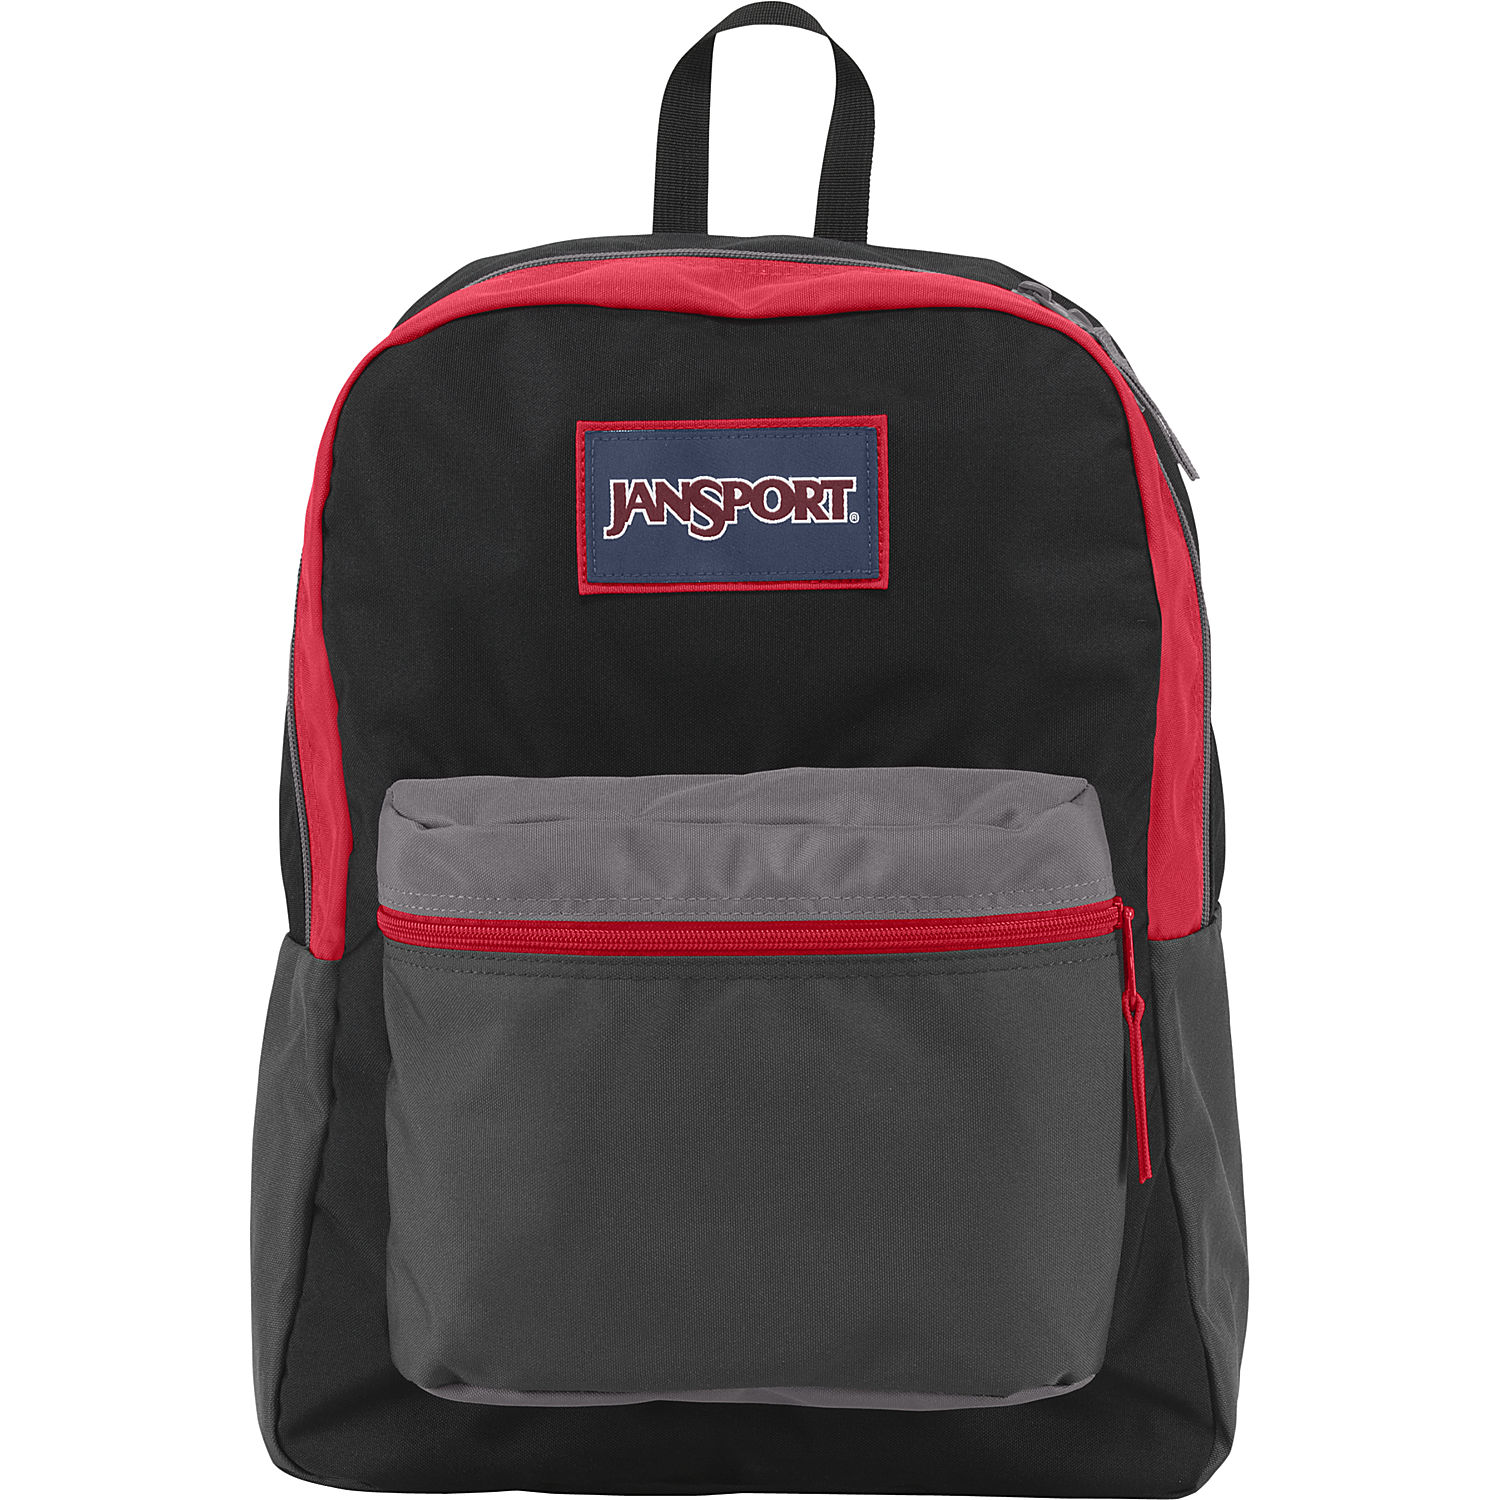 Image result for jansport backpacks black and red